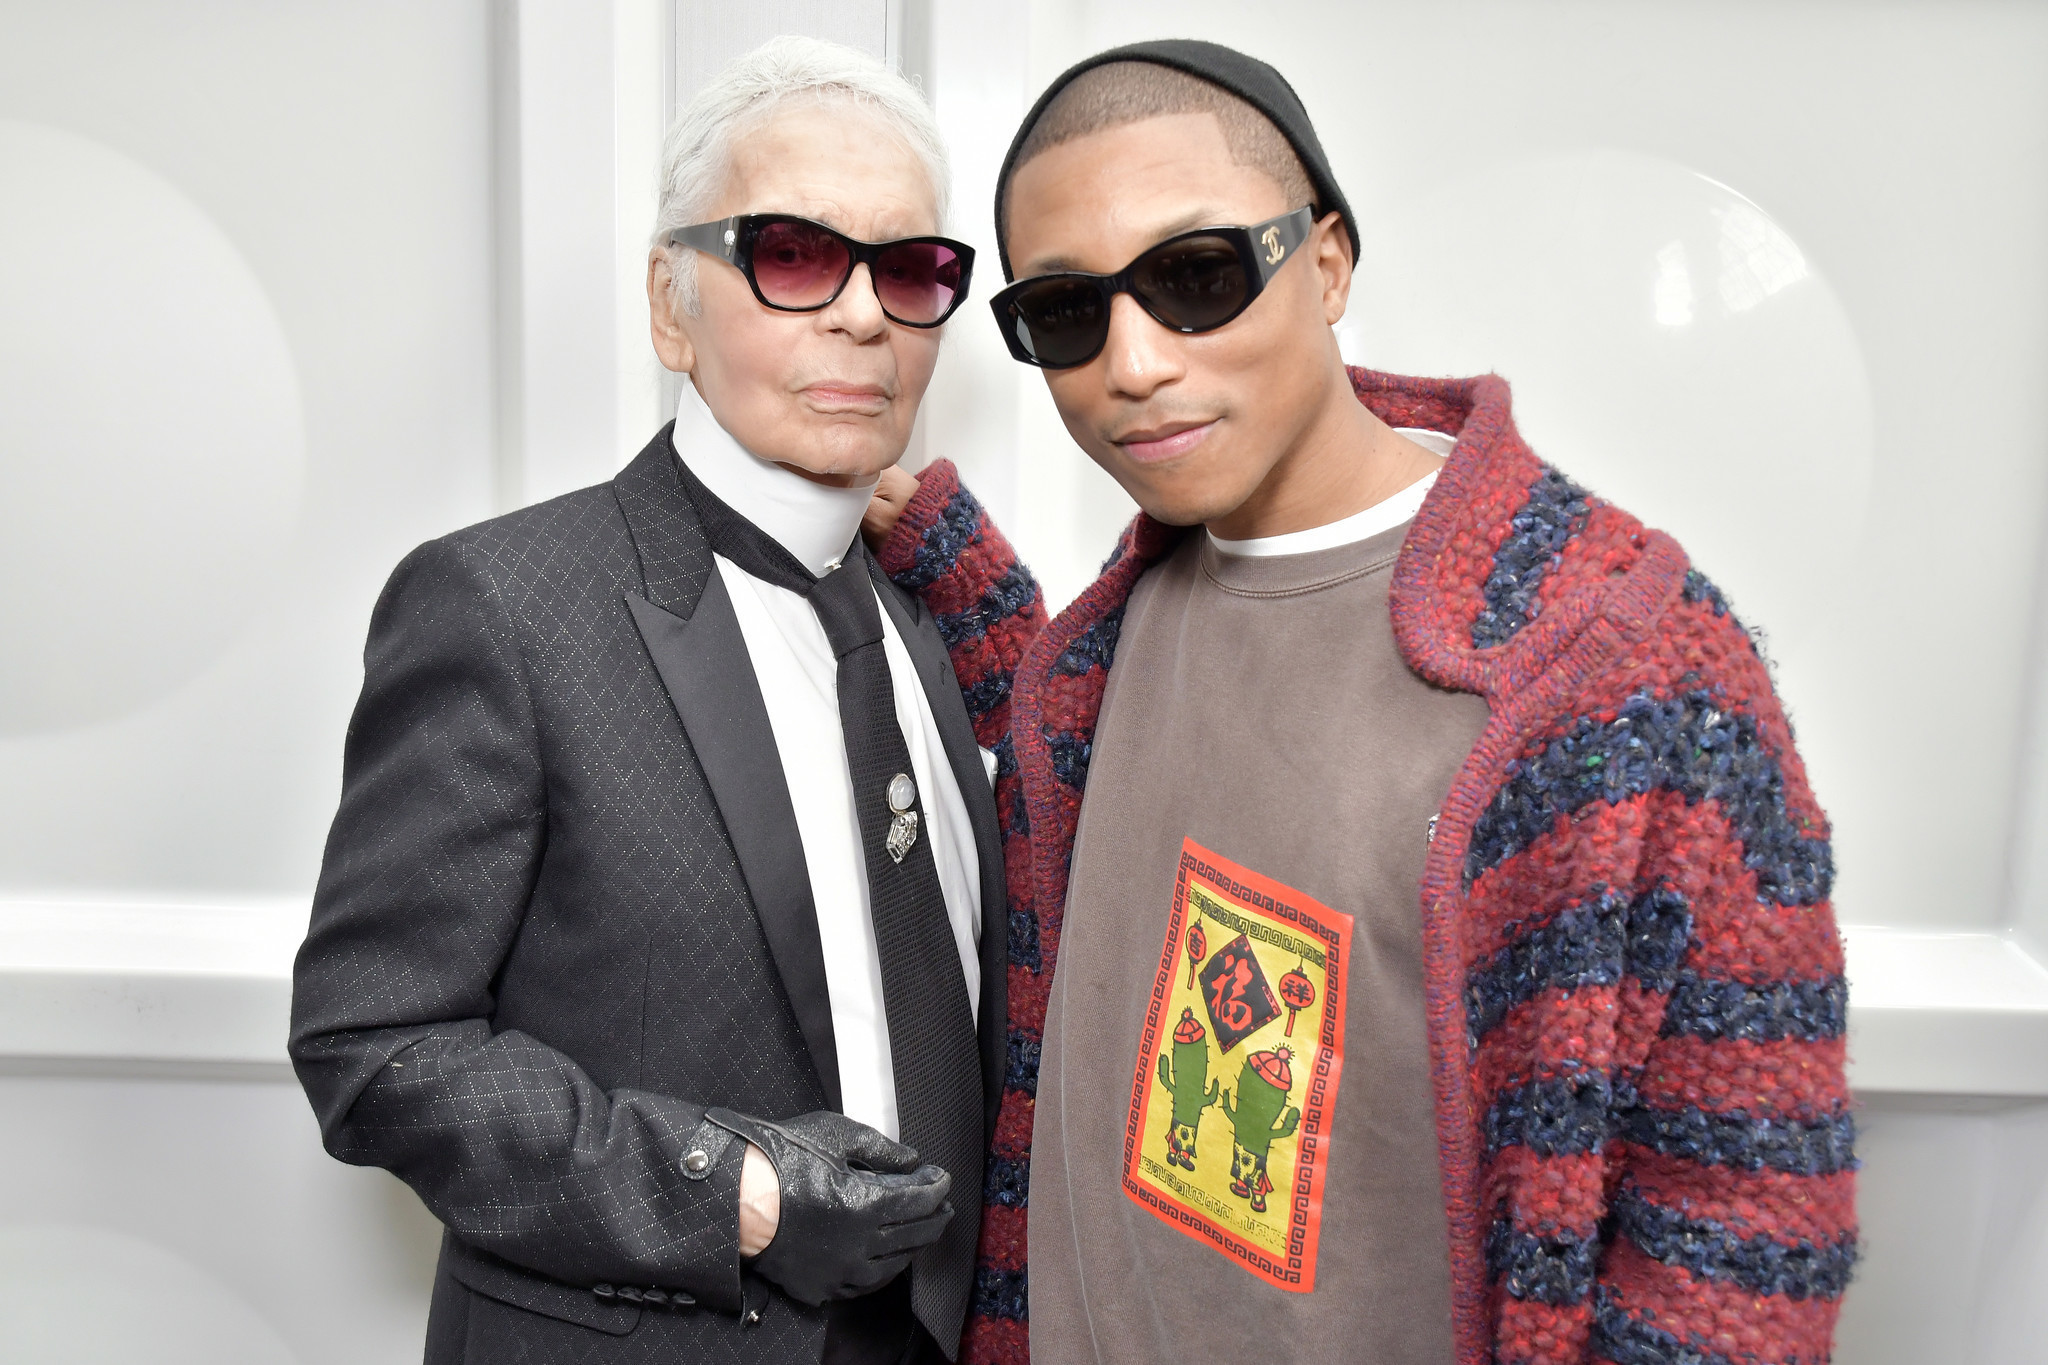 Pharrell Williams is the first man to appear in a Chanel handbag campaign